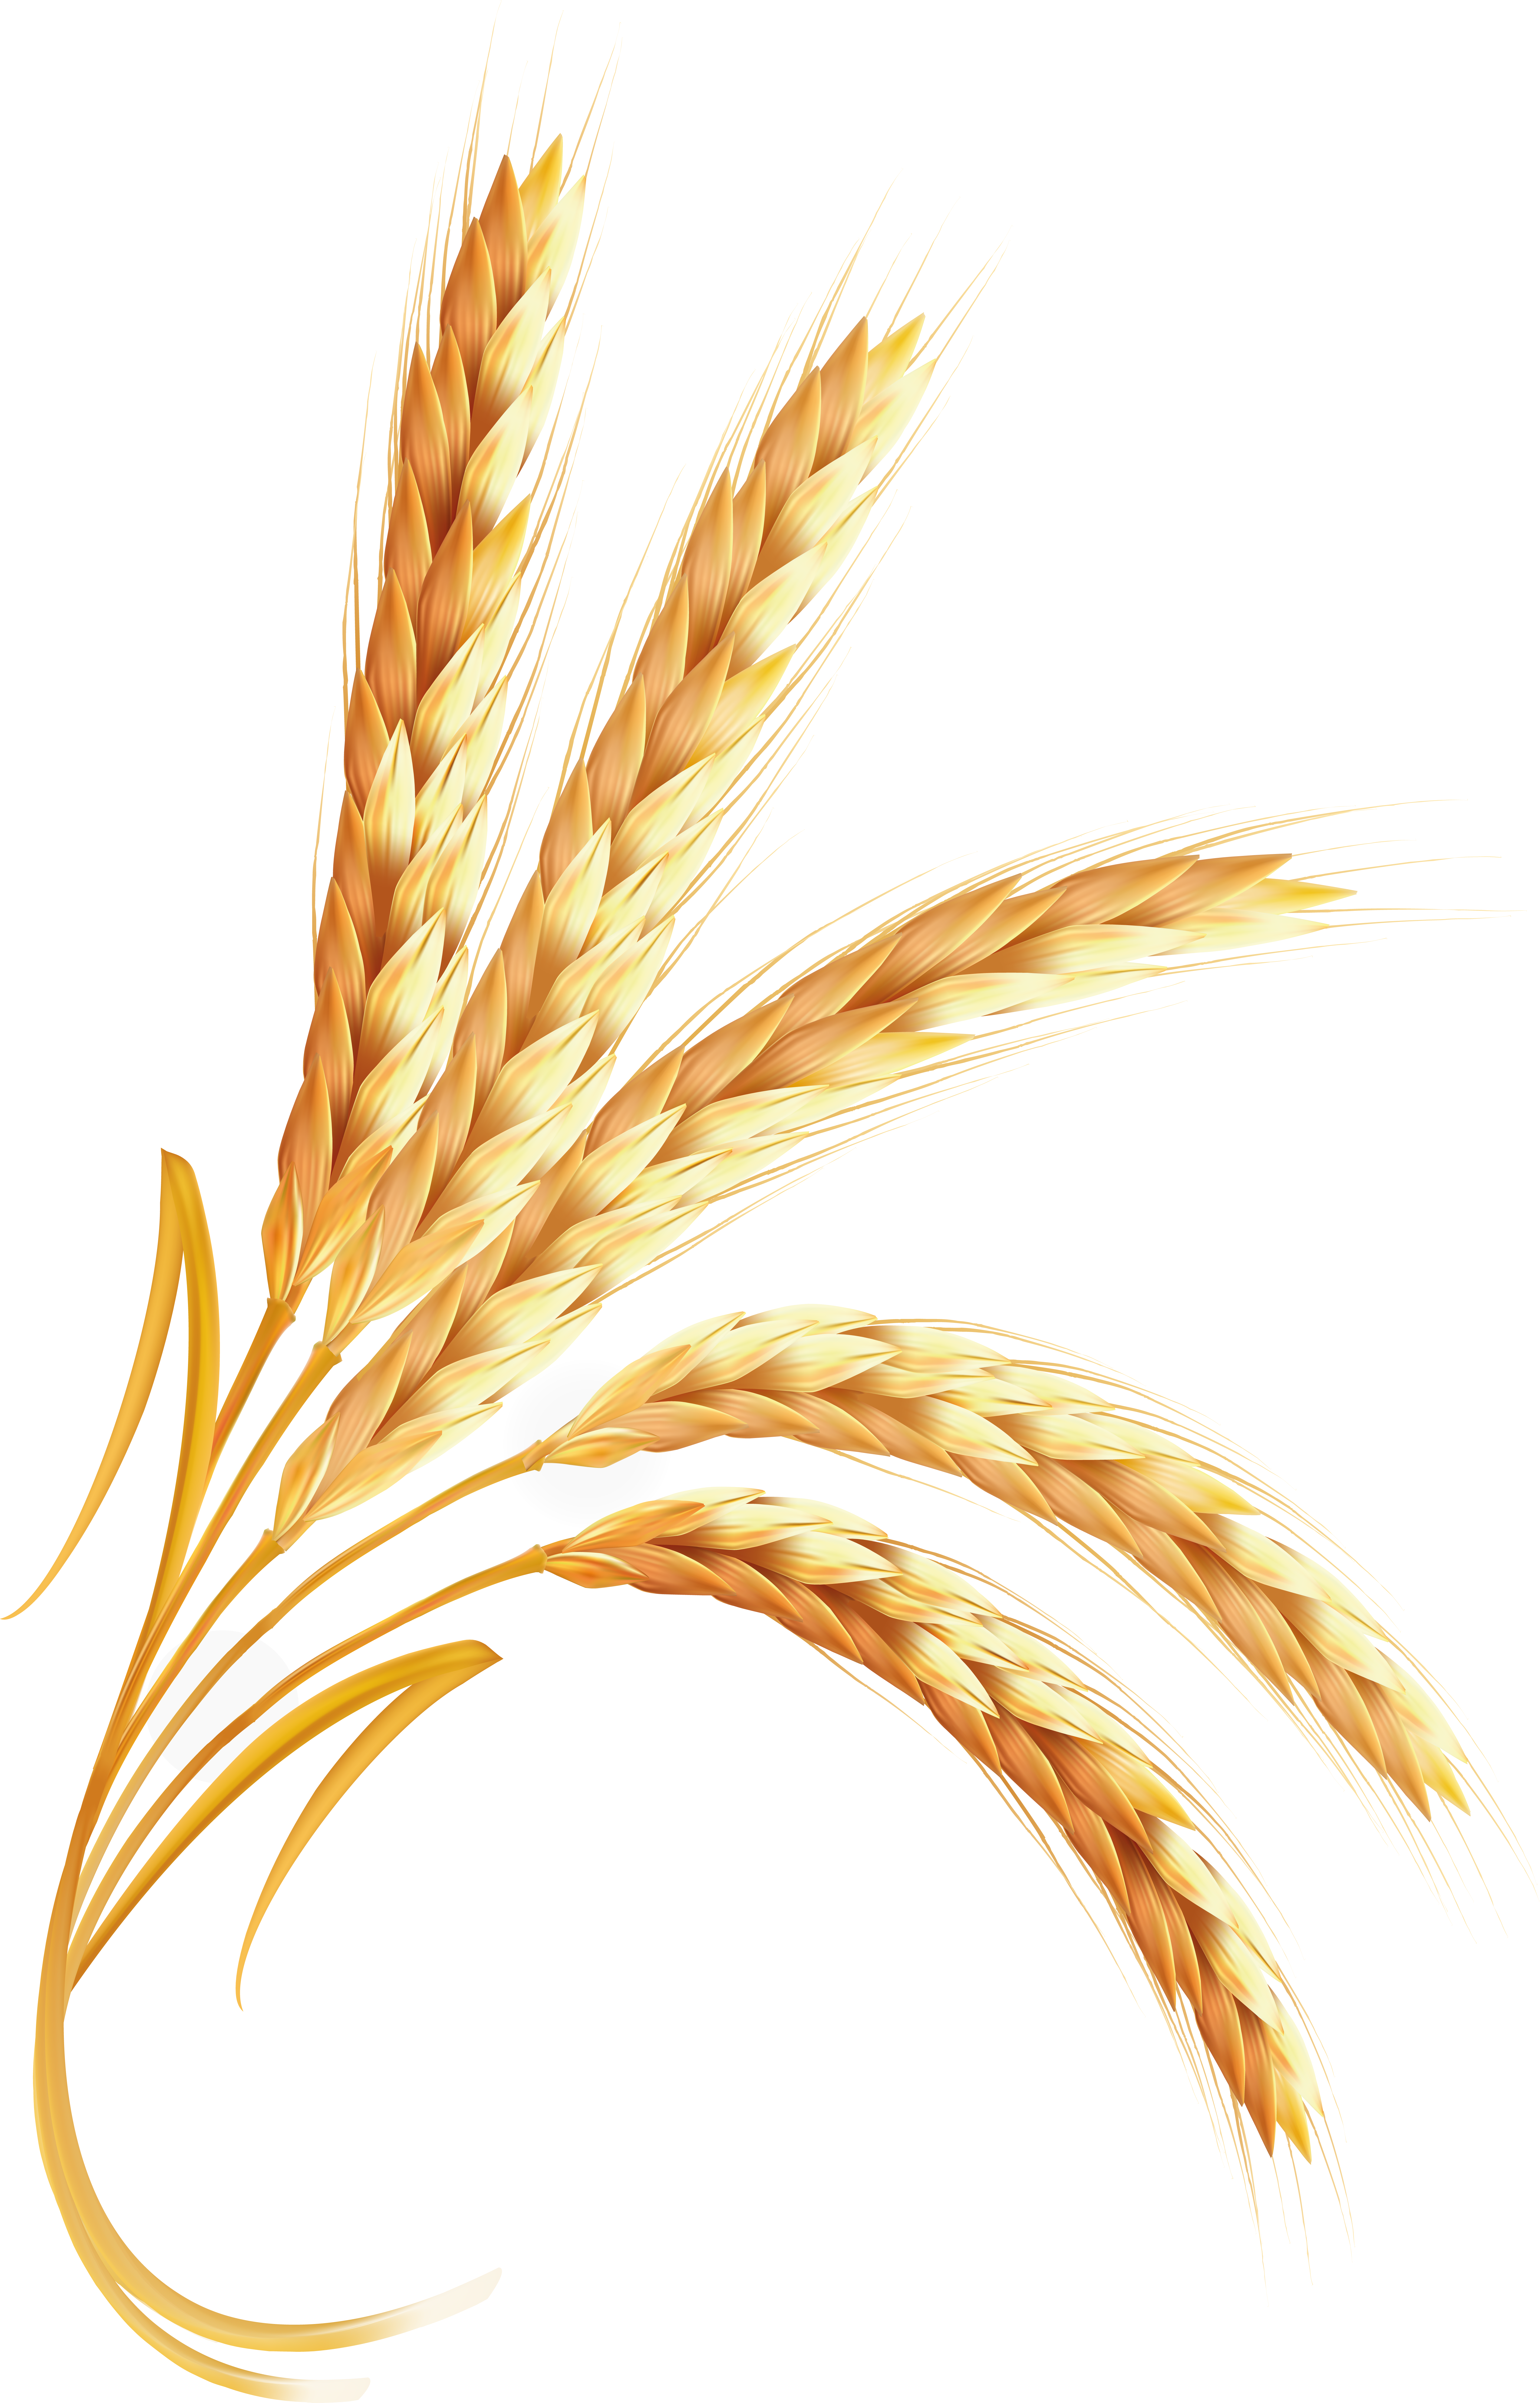 wheat png image purepng transparent png image #16647